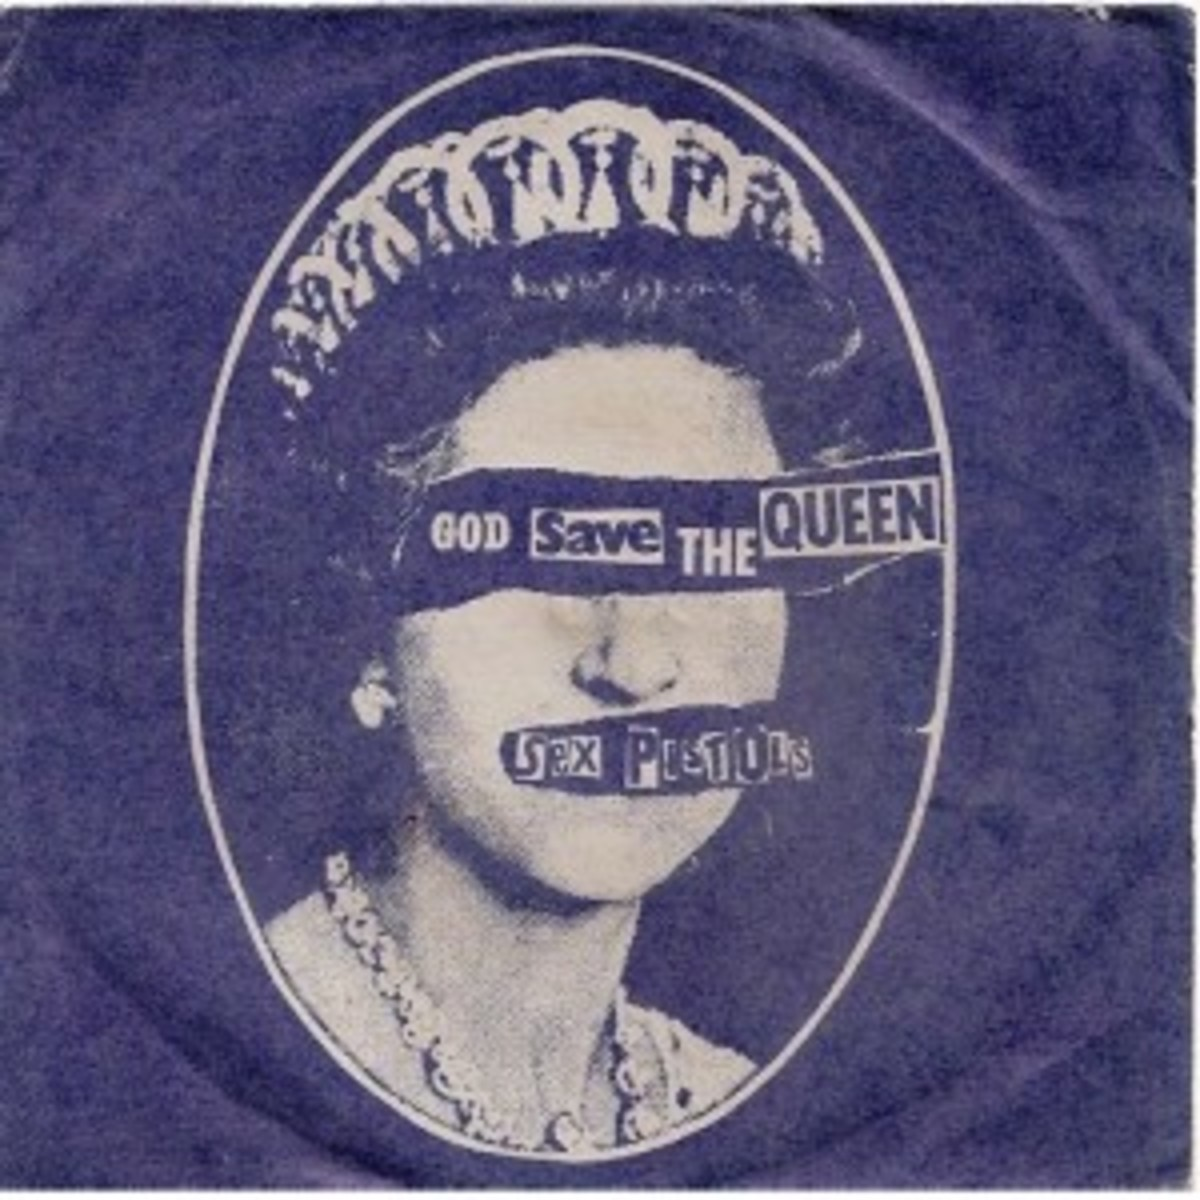 "2. Sex Pistols ""God Save The Queen"" b/w ""Did You No Wrong"" 7-inch picture sleeve."